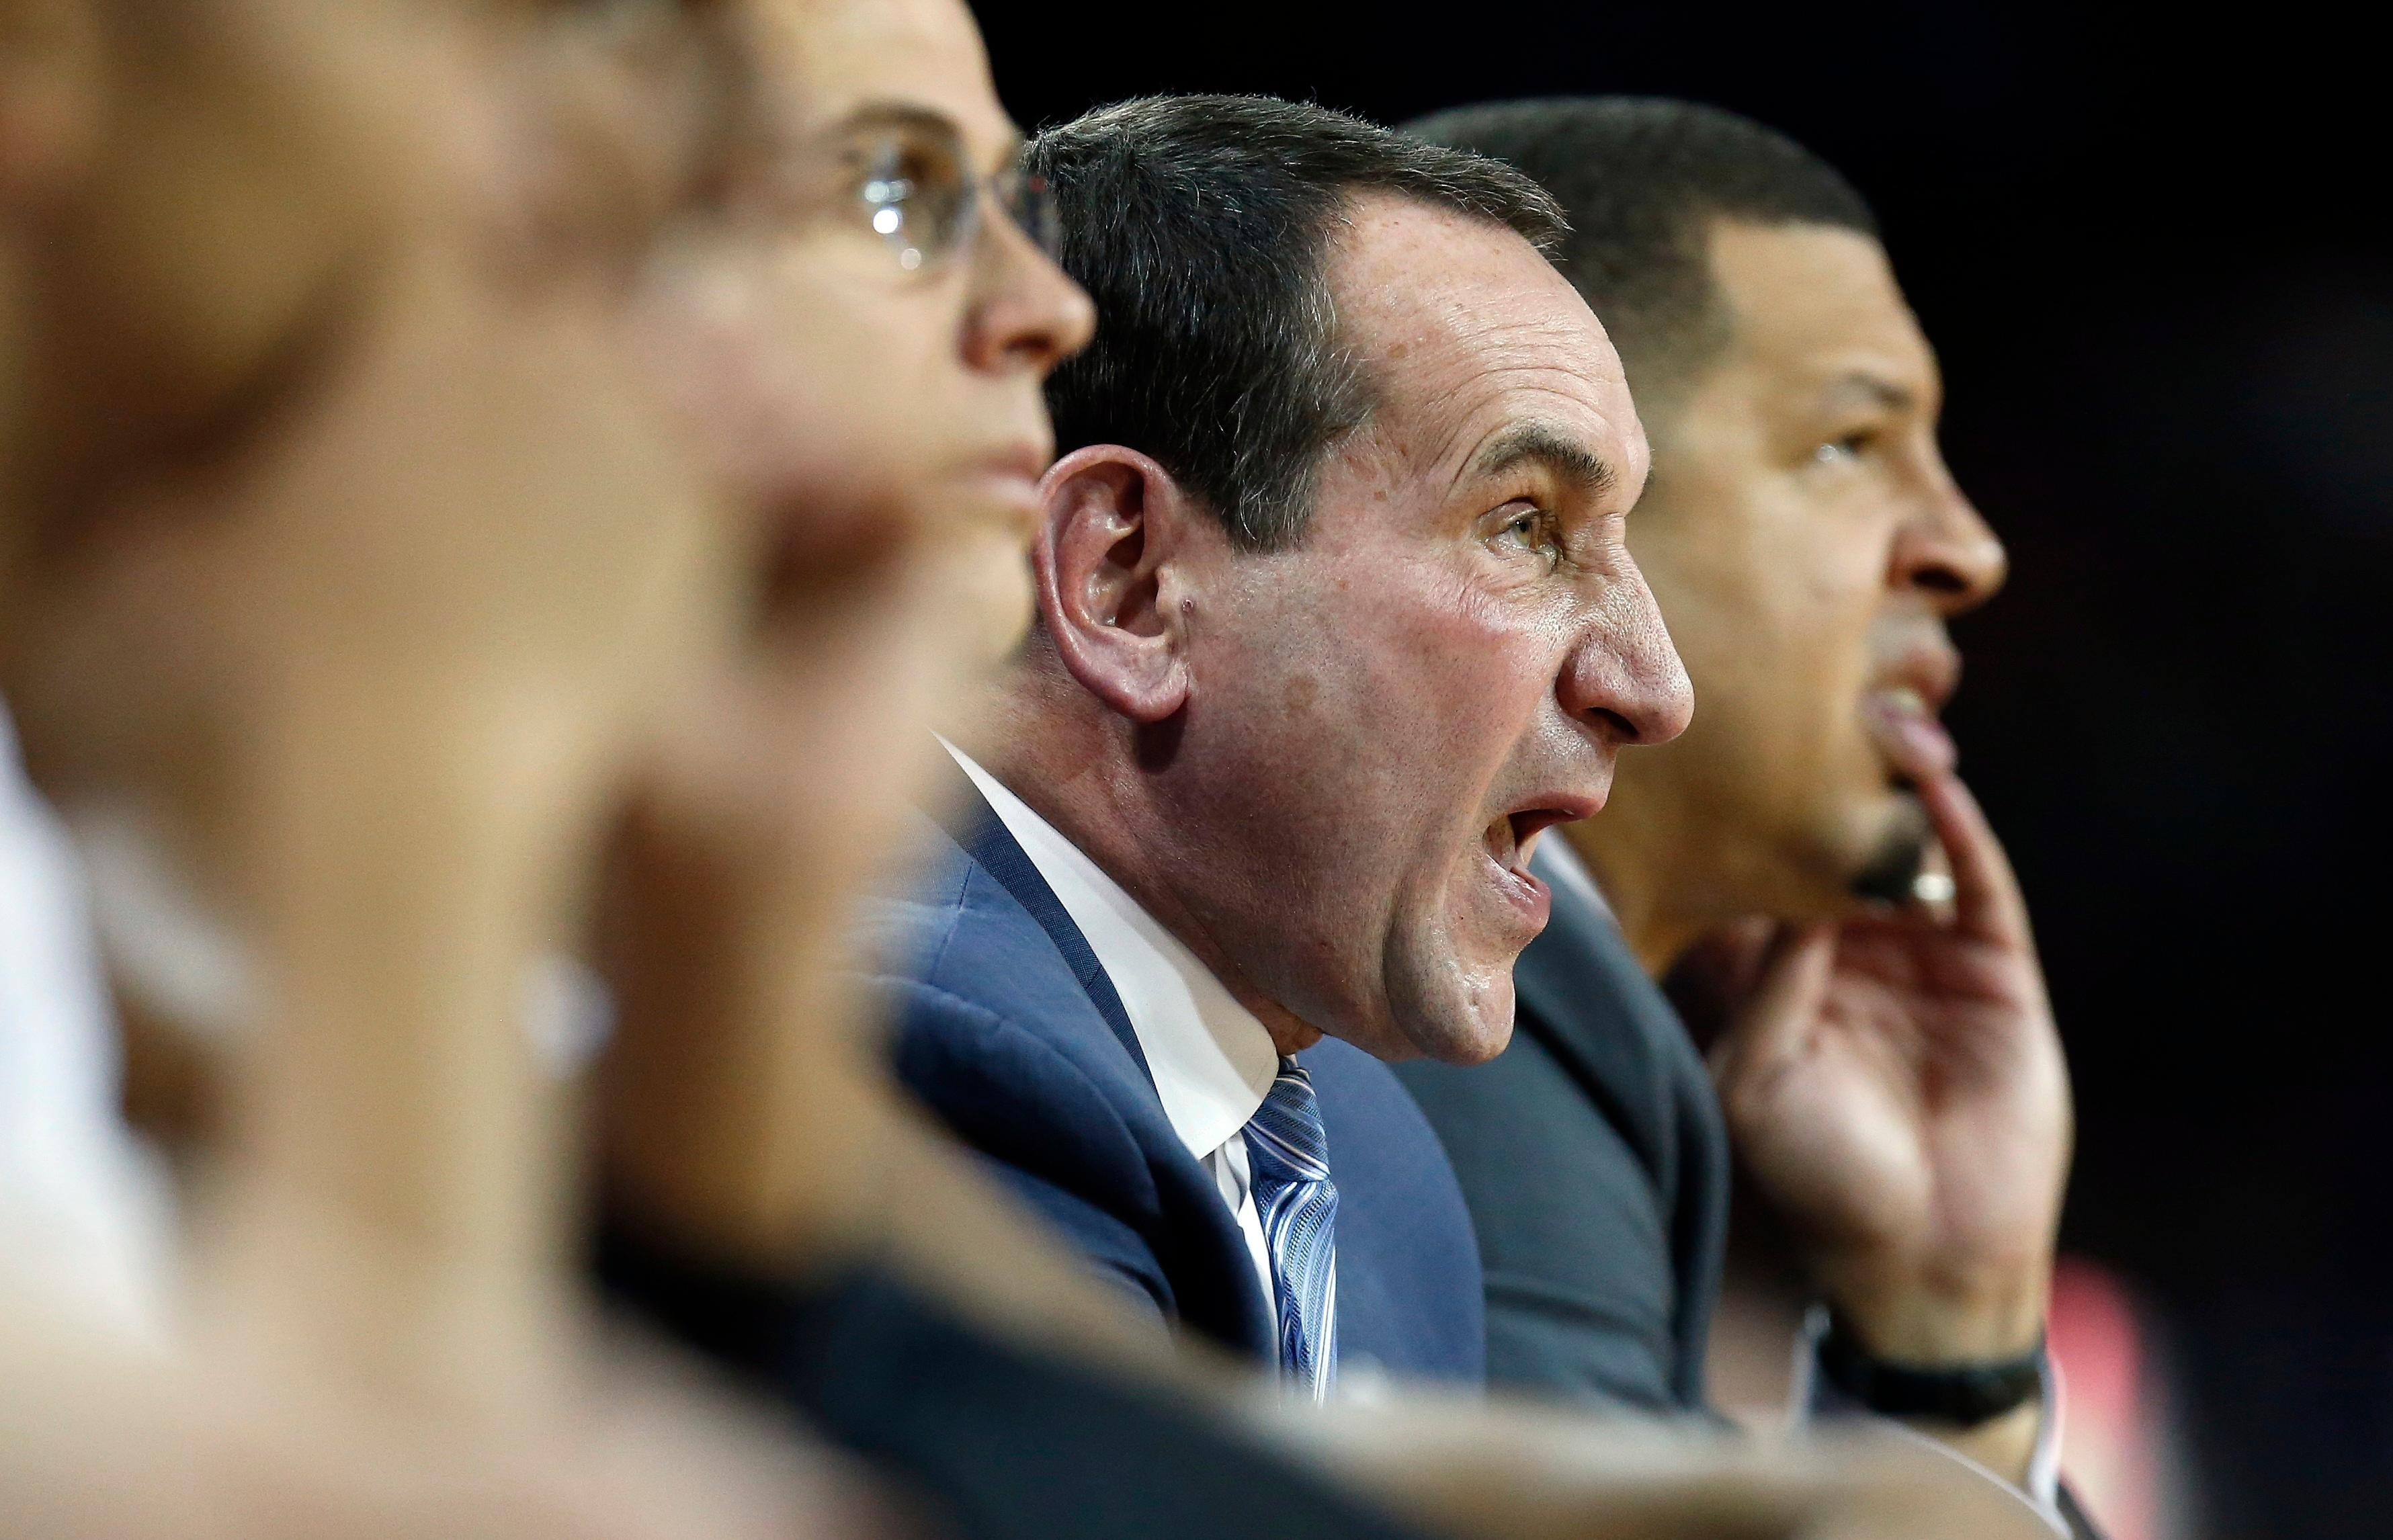 File- This Dec. 9, 2017, file photo shows Duke head coach Mike Krzyzewski yelling instructions from the bench during the first half of an NCAA college basketball game against Boston College in Boston. Krzyzewski isn't interested in thinking about how his latest group compares to his past teams. Regardless, this year's team, led by senior Grayson Allen and top-tier freshman Marvin Bagley III, sure looks like a squad set to win another Atlantic Coast Conference championship for its Hall of Fame coach as the bulk of league play arrives this weekend. (AP Photo/Michael Dwyer, File)